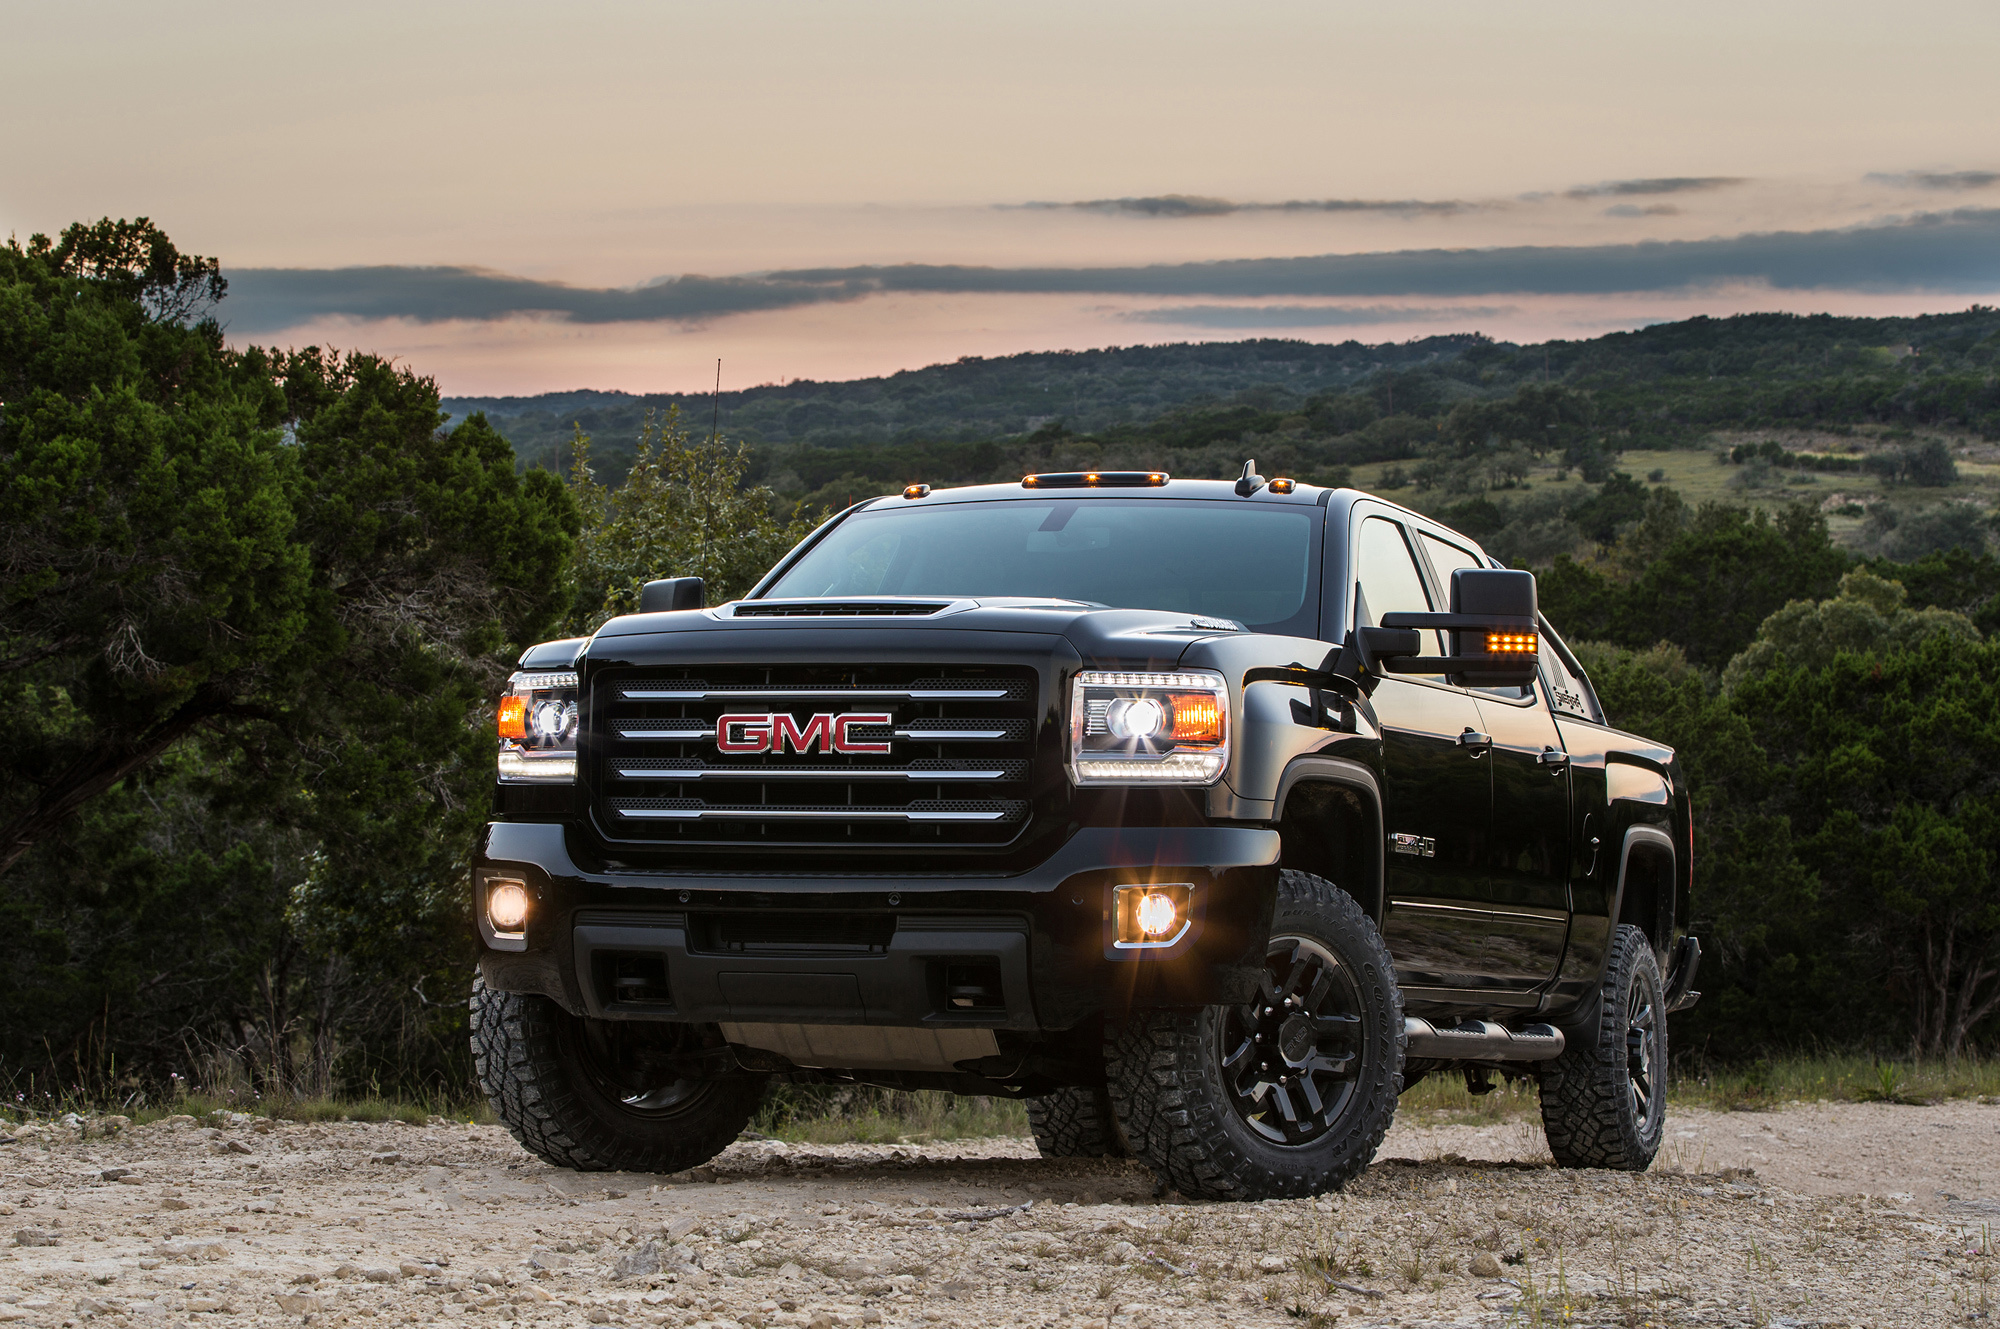 GMC Sierra HD All Terrain X Wallpapers Images Photos Pictures 2000x1329